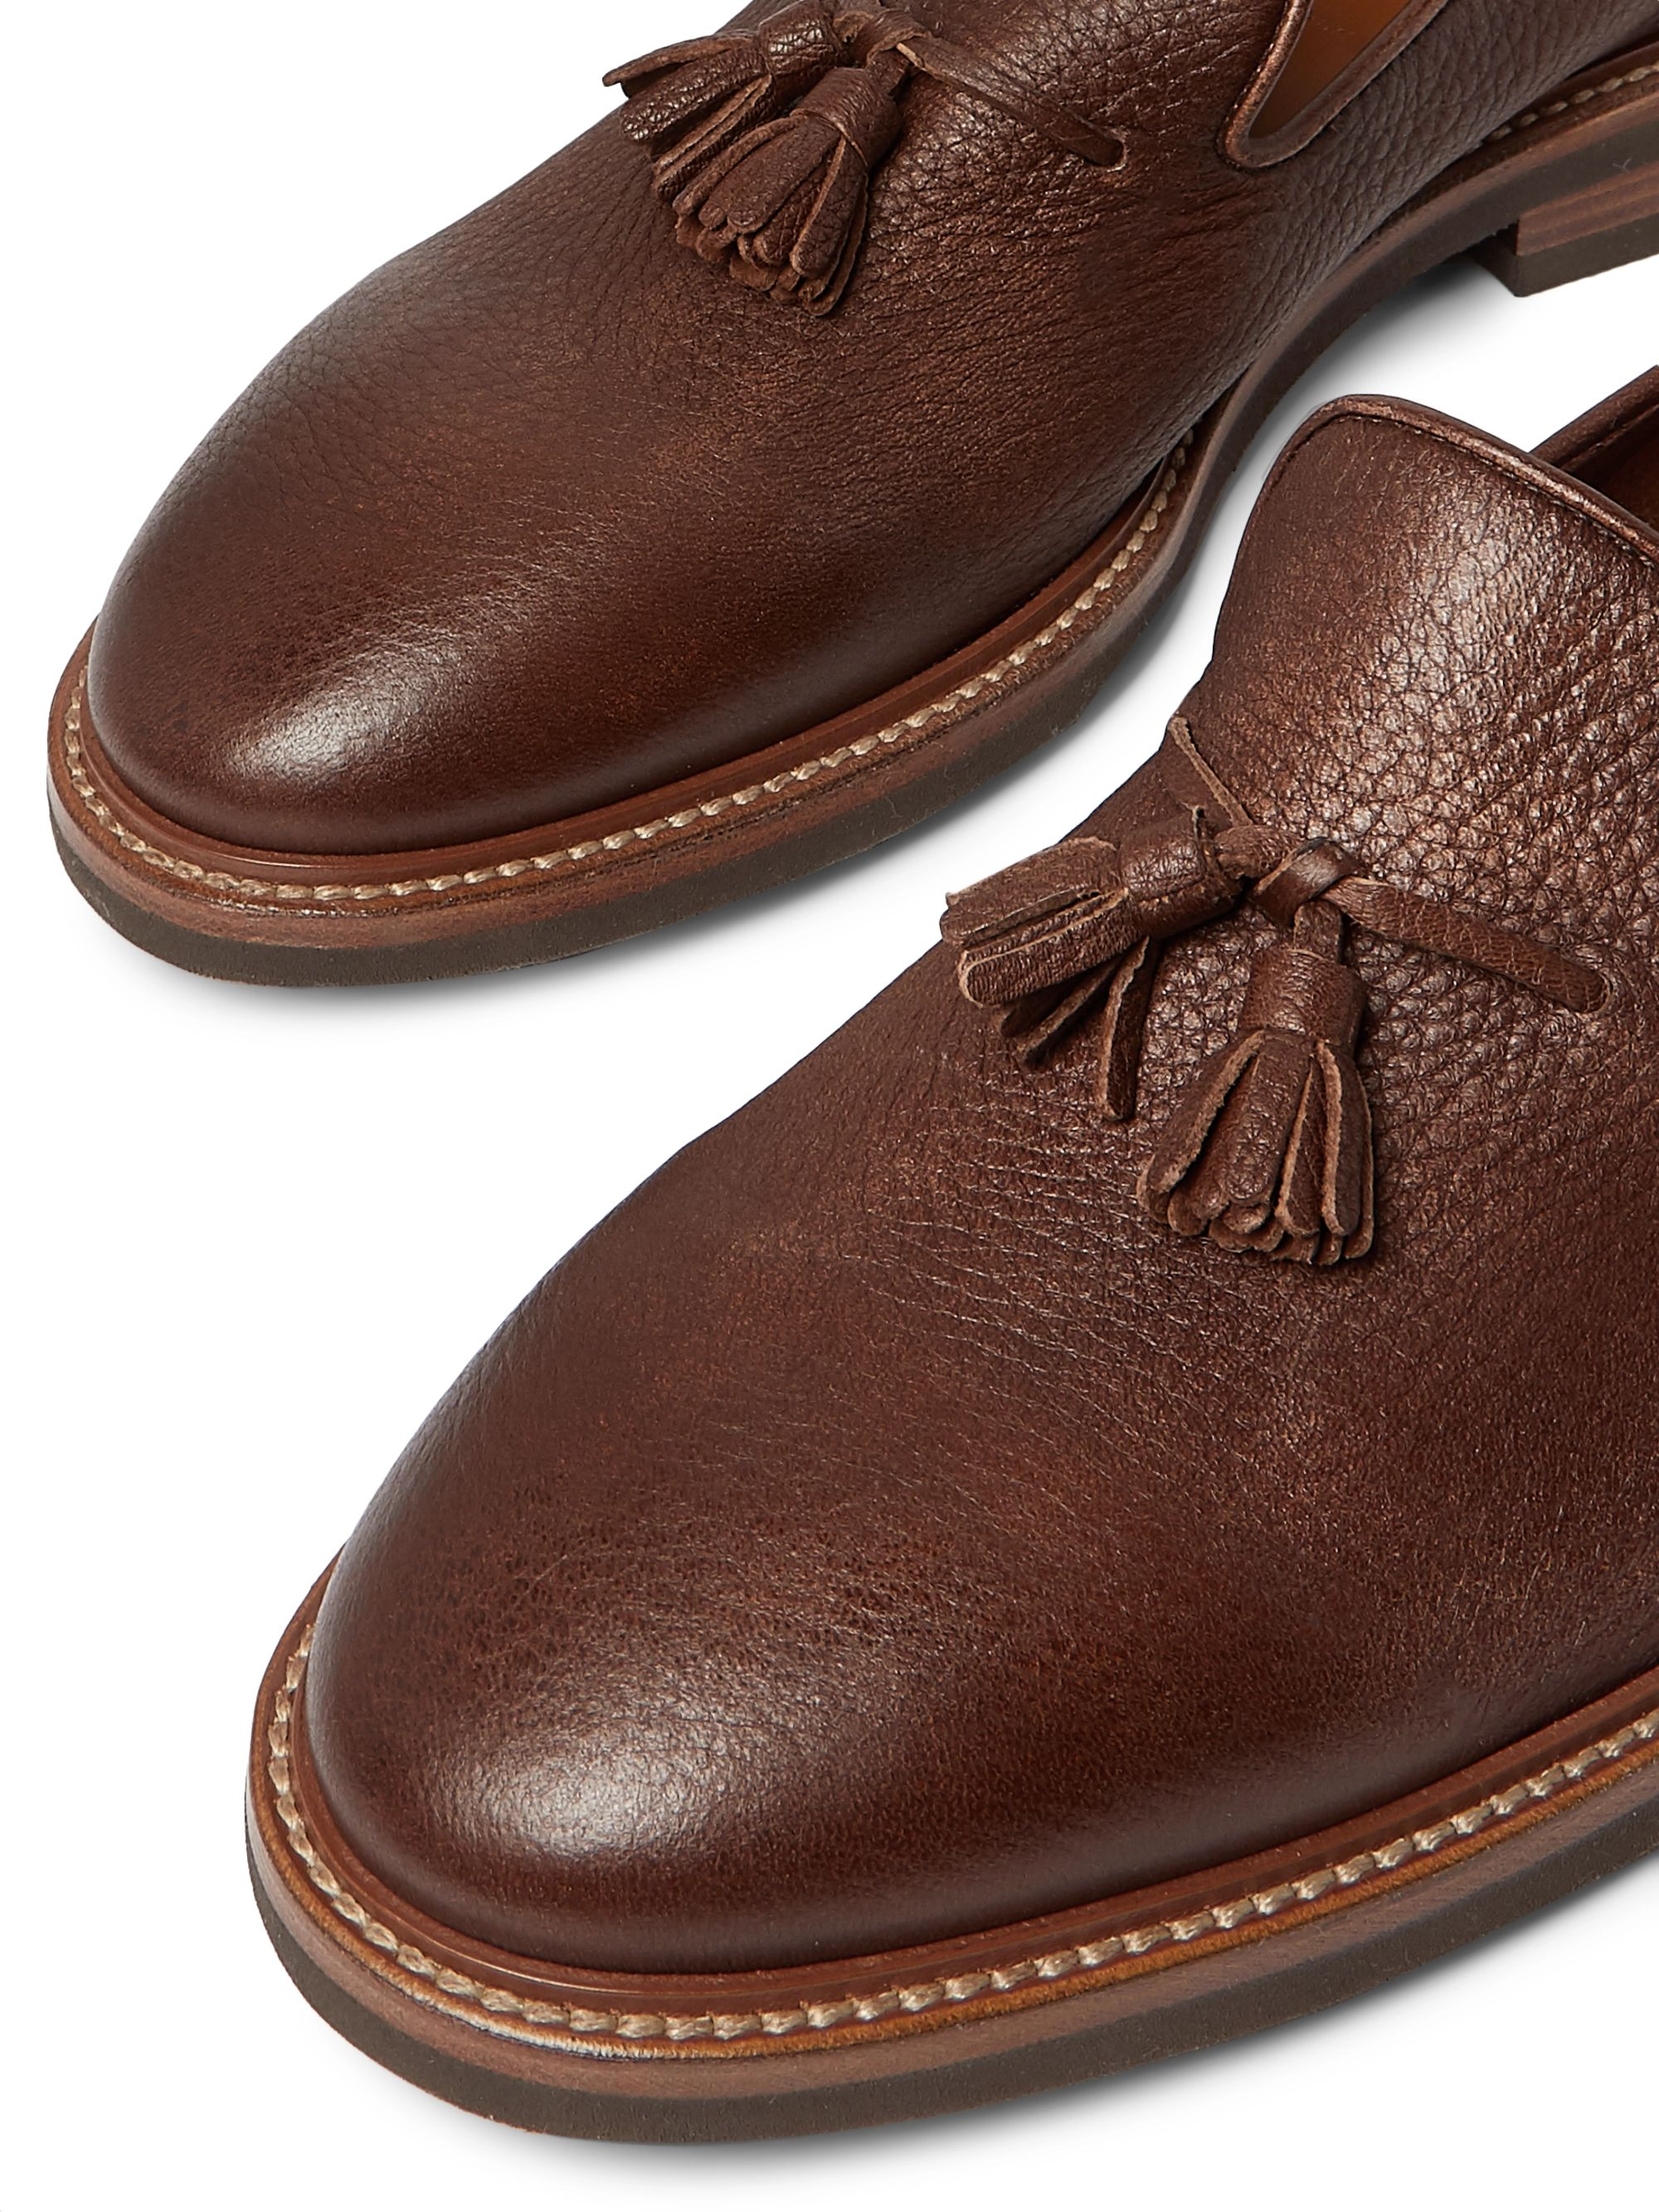 Brunello Cucinelli Full-Grain Leather Tasselled Loafers